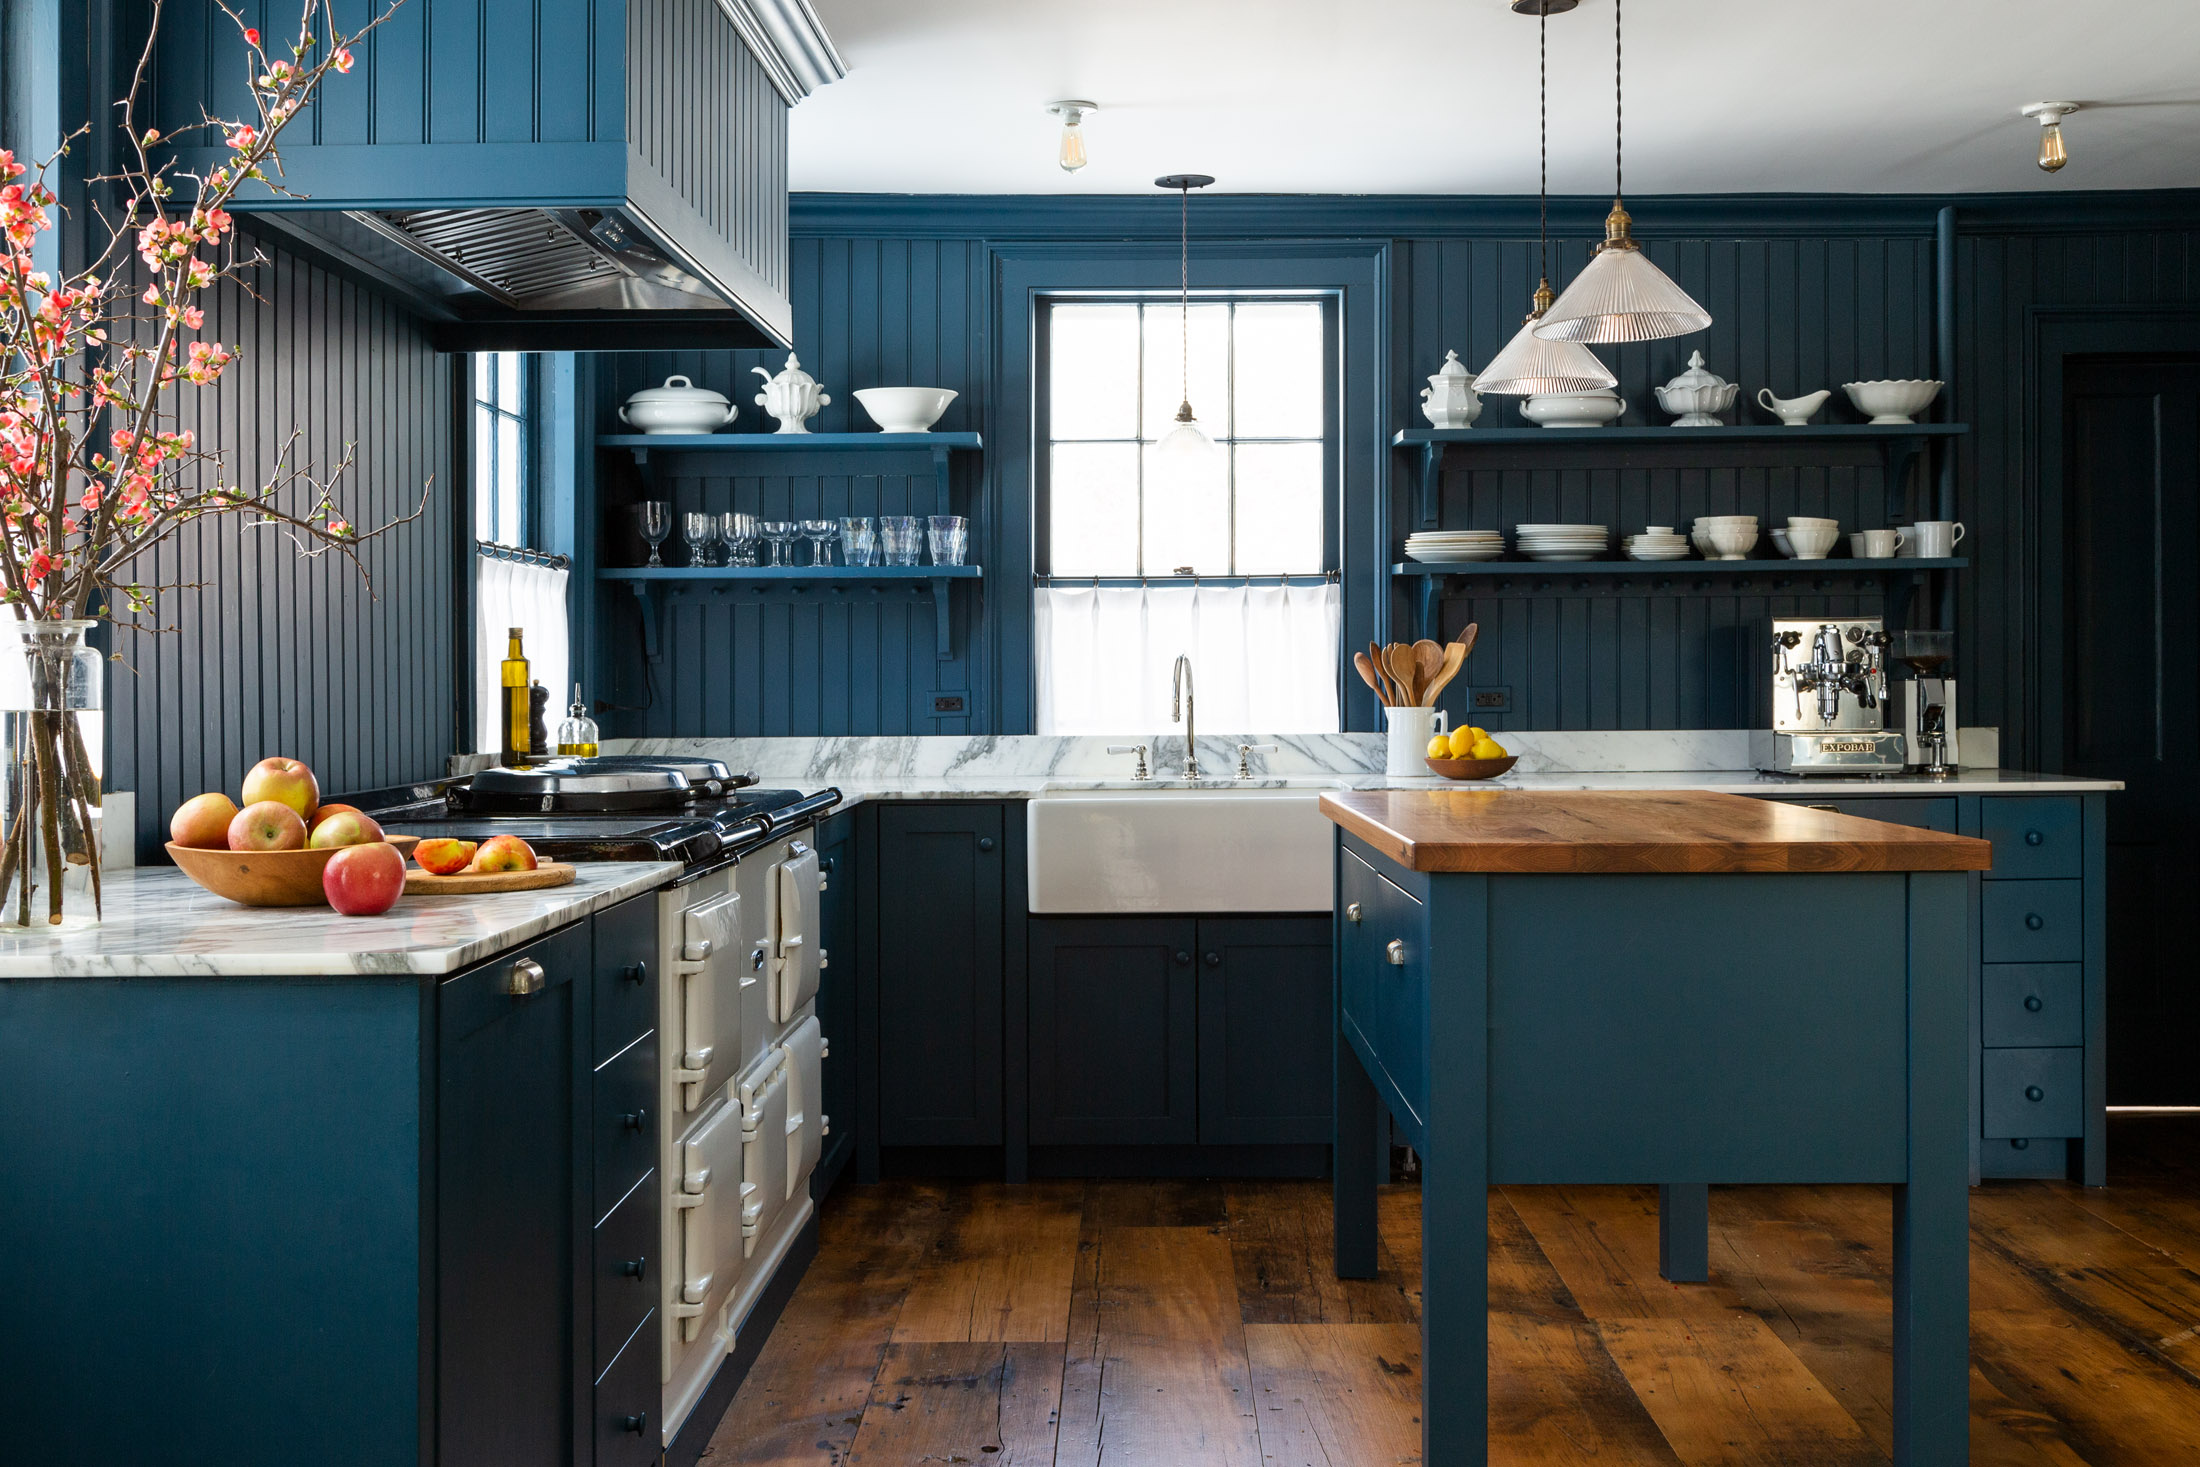 a modern kitchen with traditional farmhouse details. photograph by thomas richt 9